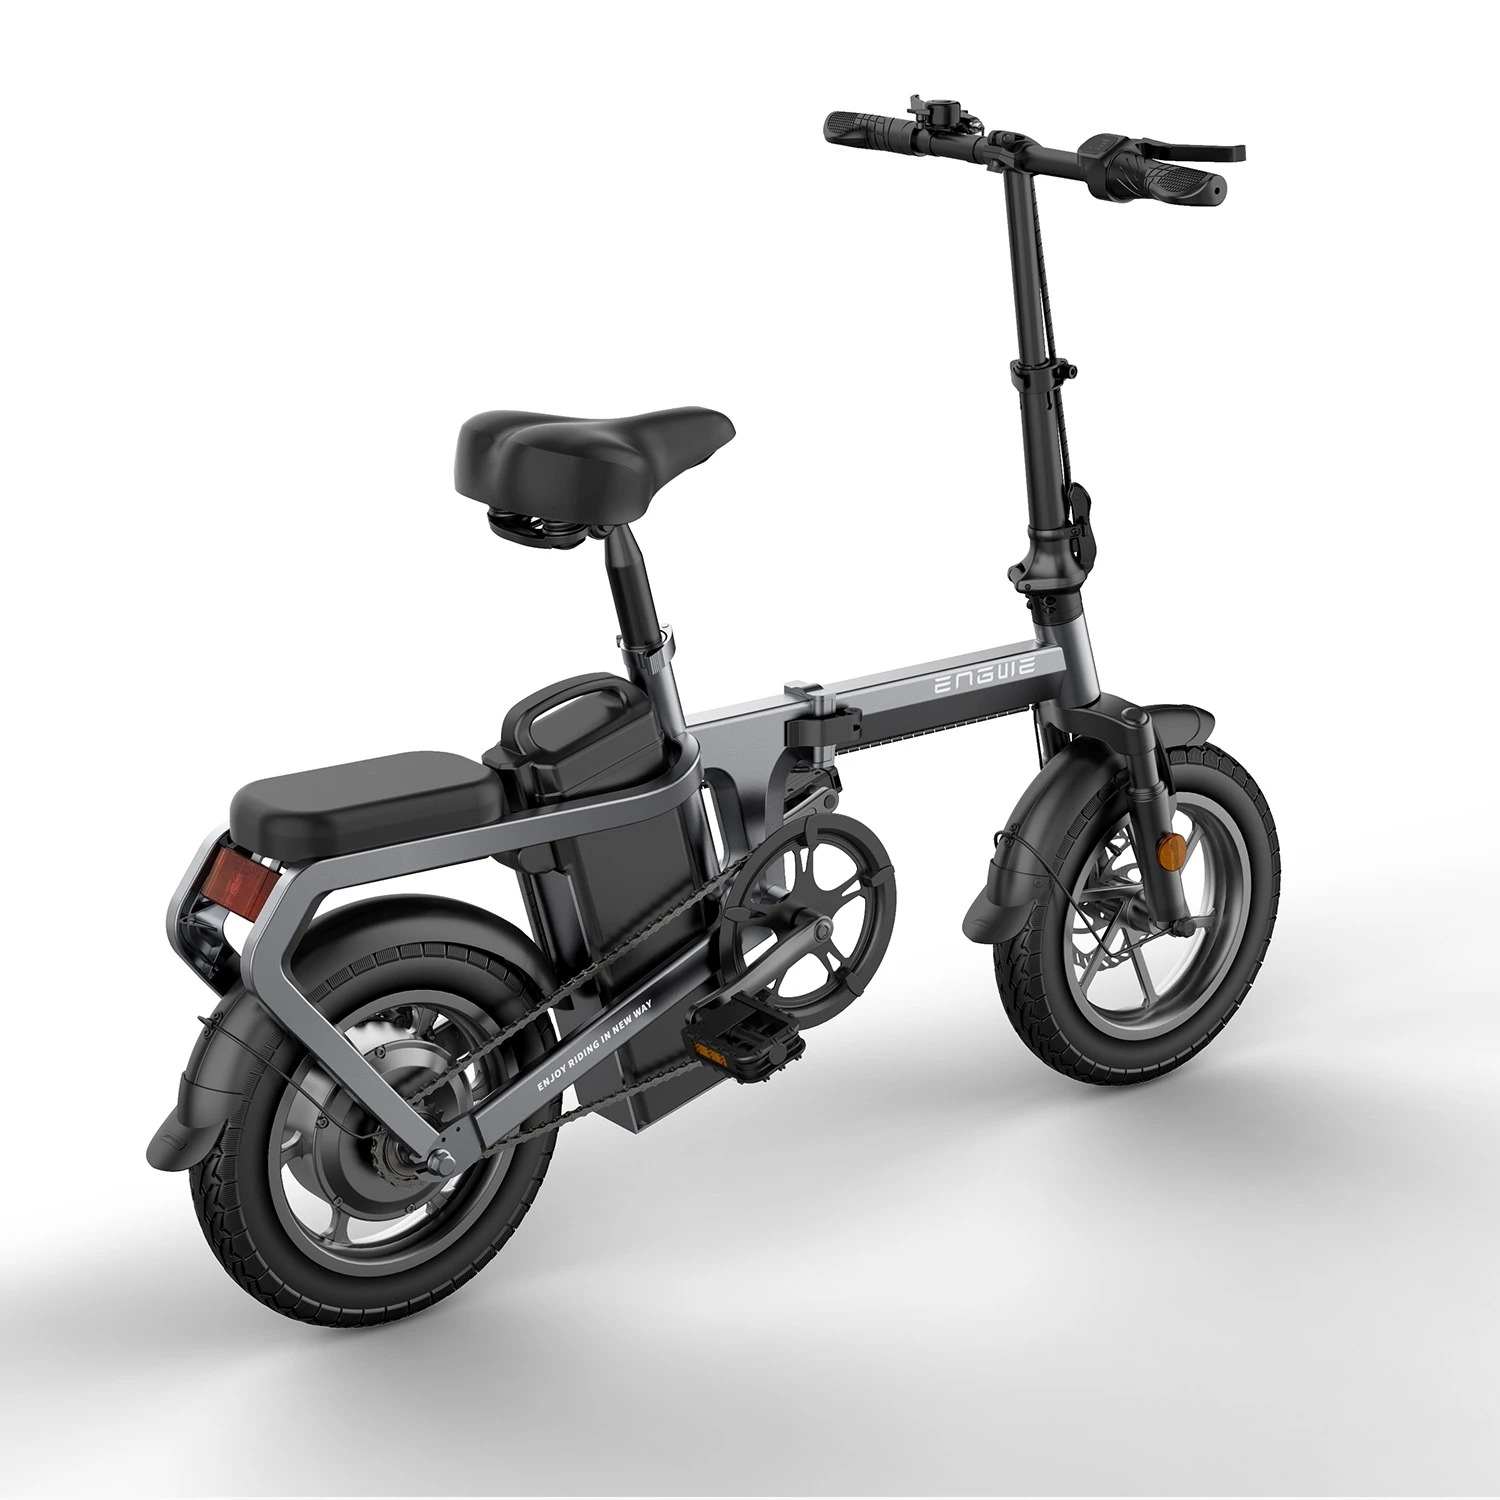 ENGWE X5 Folding Electric Bike with 10A Removable Battery Ship from US Warehouse